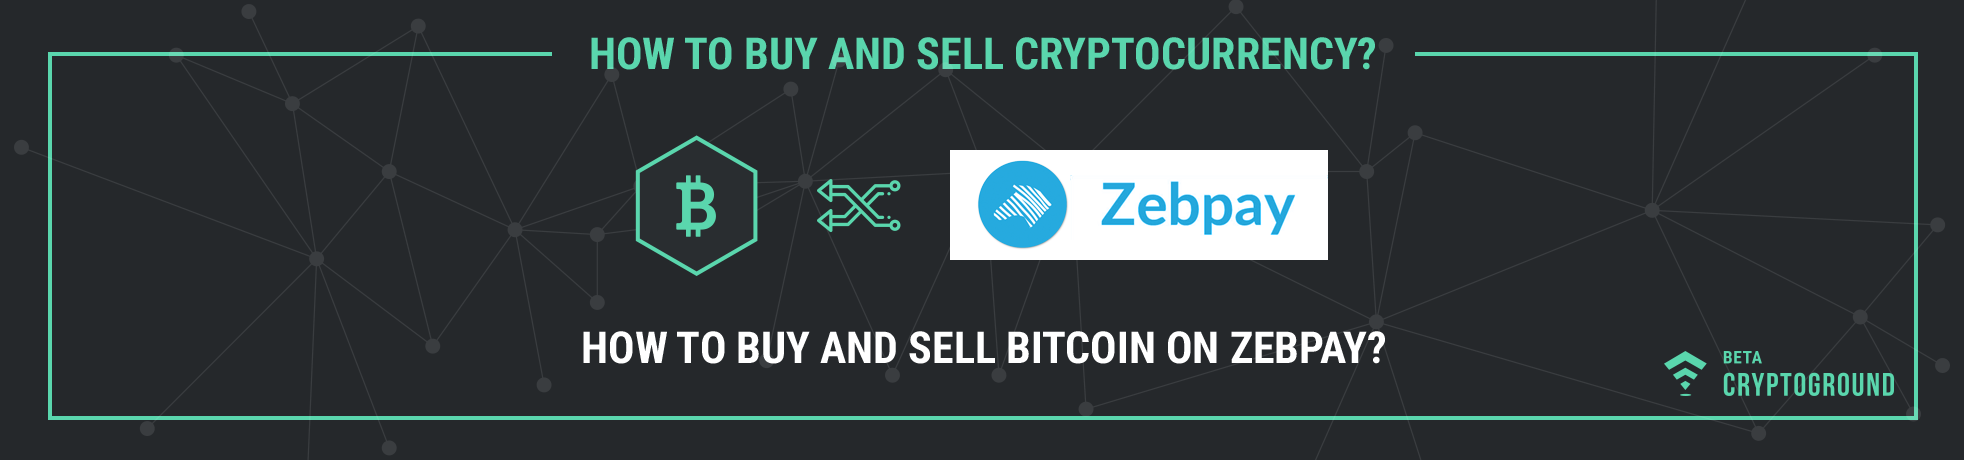 How to Buy and Sell Bitcoin on Zebpay?